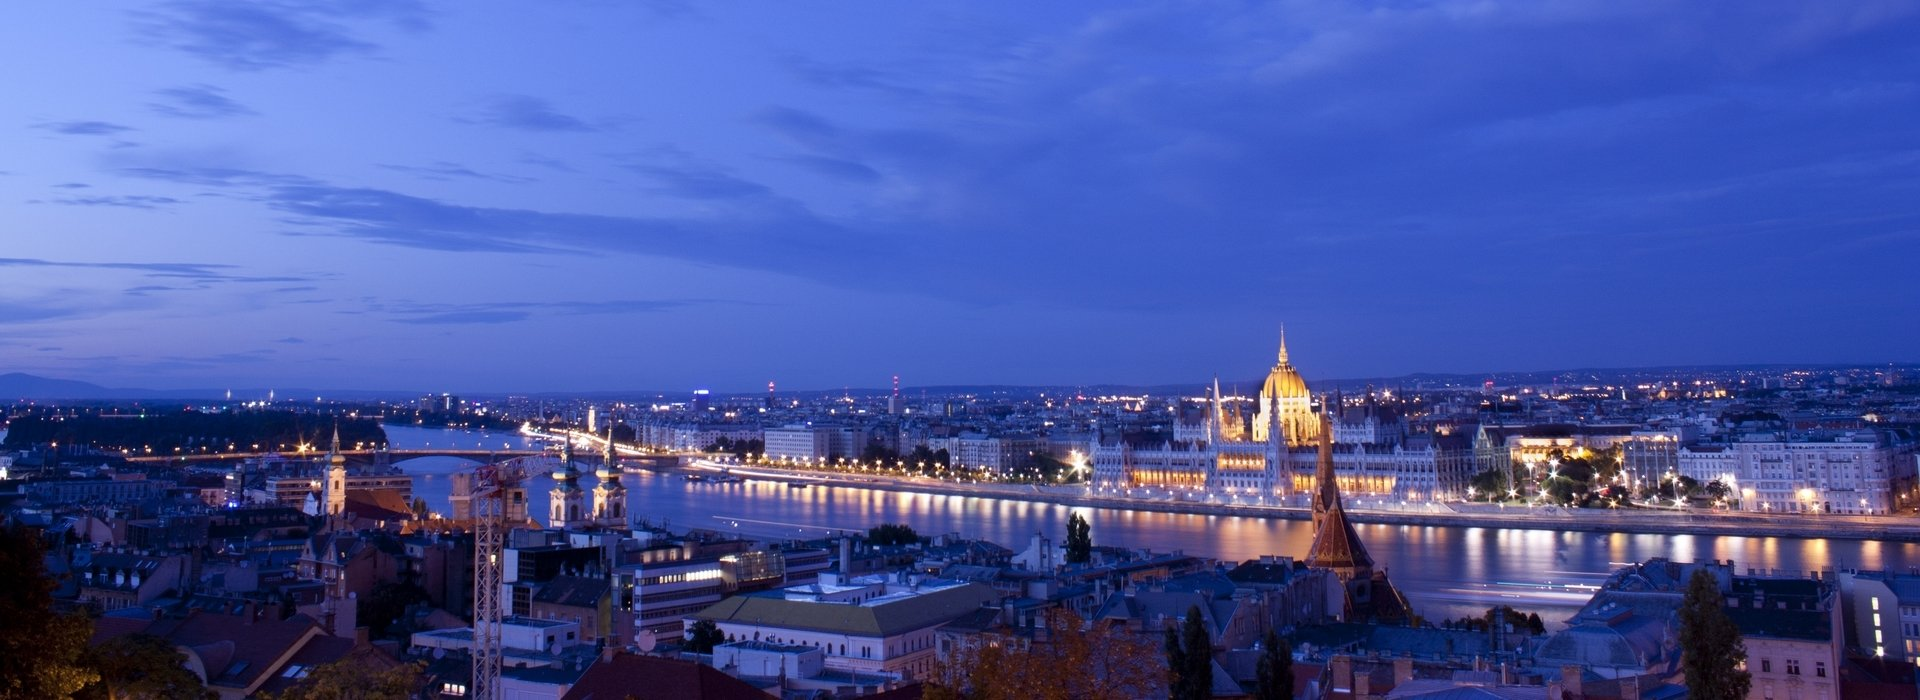 Information about Budapest